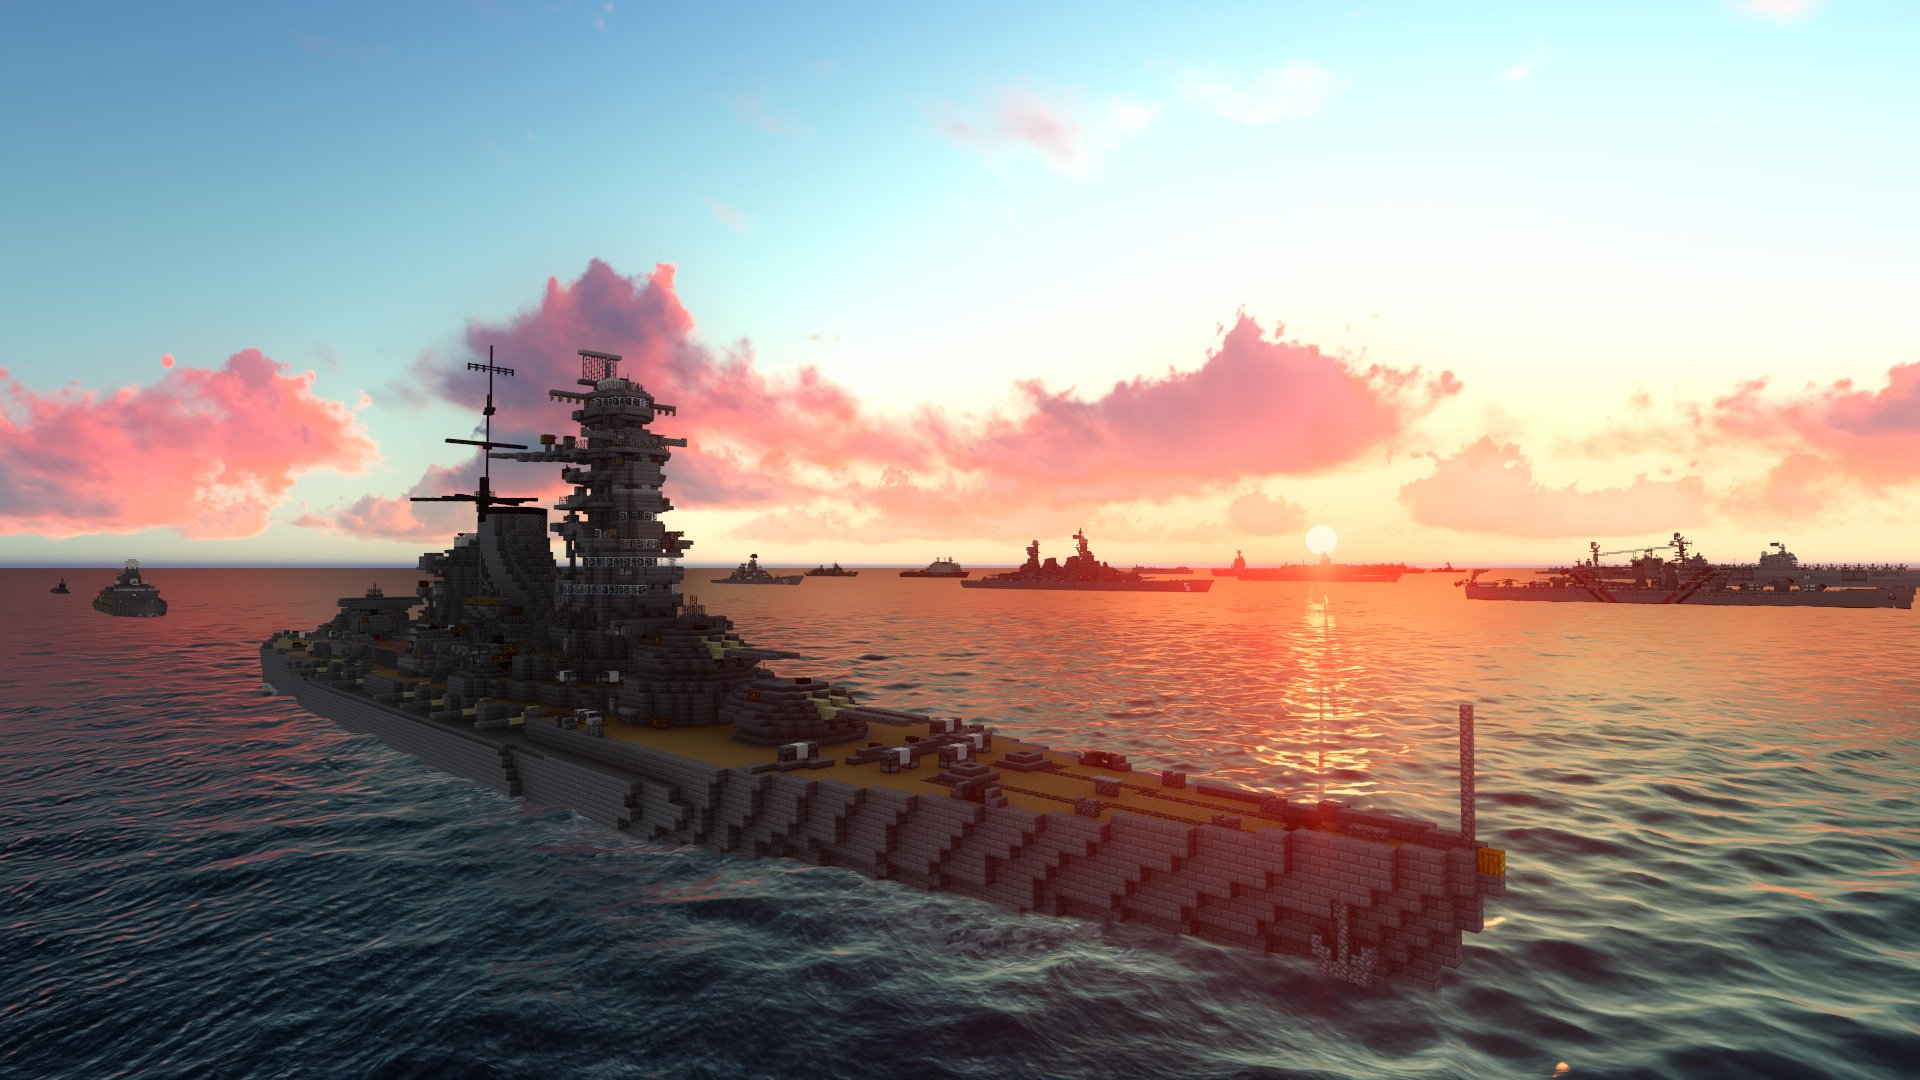 Minecraft-Warships-part-of-the-Military-Builders-Fleet-1920-x-1080-Need-iPhone-S-Plus-Wallpap-wallpaper-wp3808262